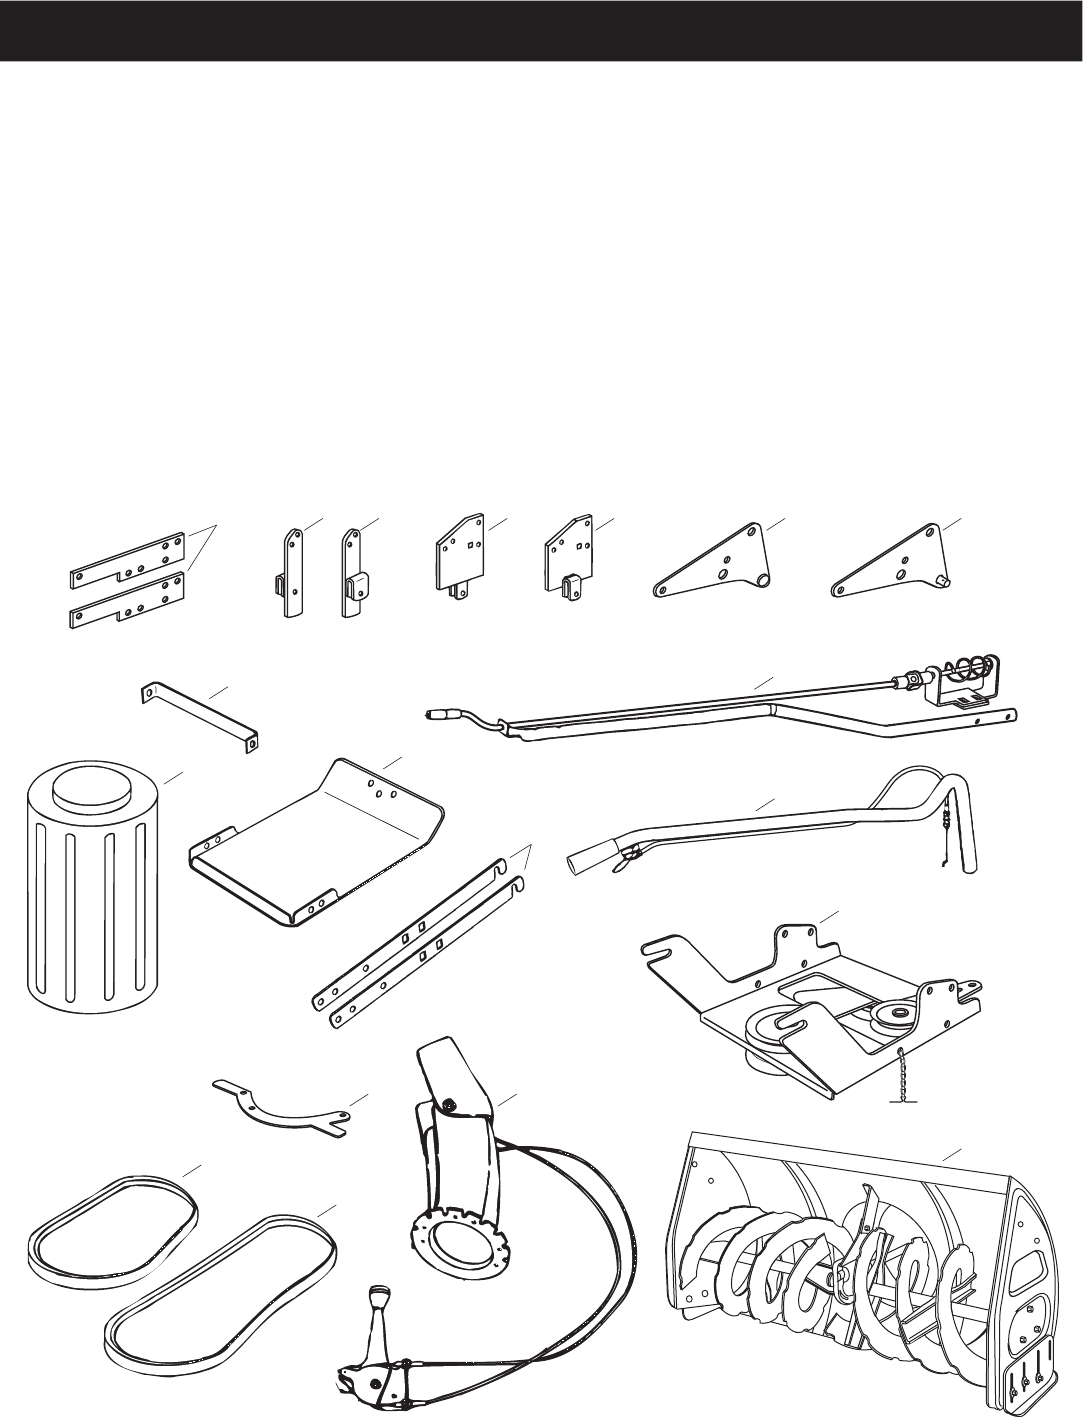 Page 5 of Sears Snow Blower 486.248463 User Guide